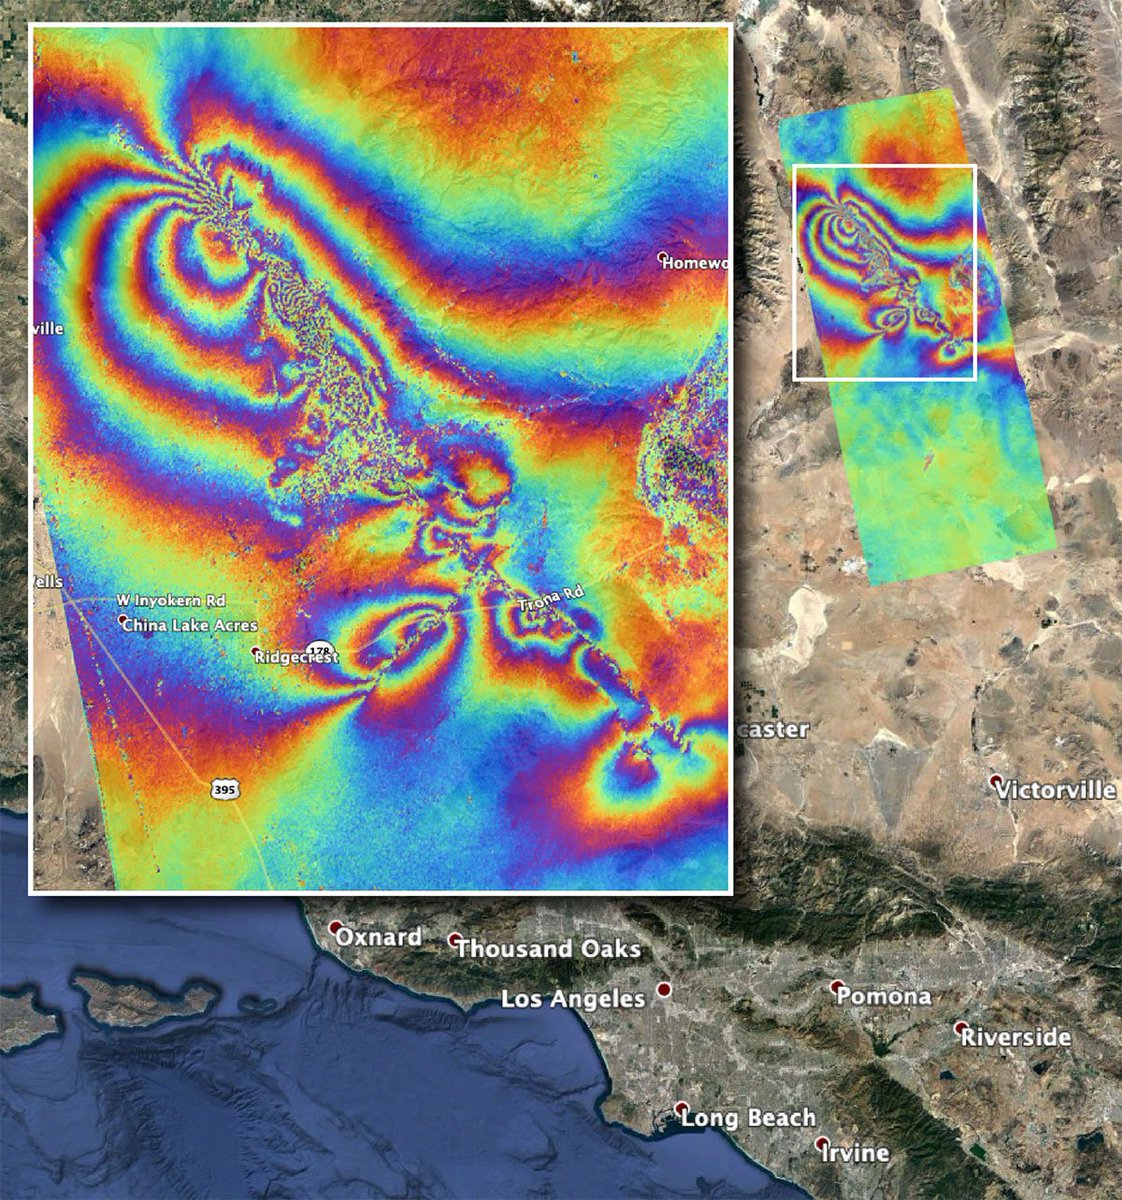 Two major earthquakes that rattled the southern region of California on July 4 and 5 can be seen from space. That's right. The Advanced Rapid Imaging and Analysis team at @NASAJPL has produced a map showing the resulting surface displacement. 📖: go.nasa.gov/2XBrt1L